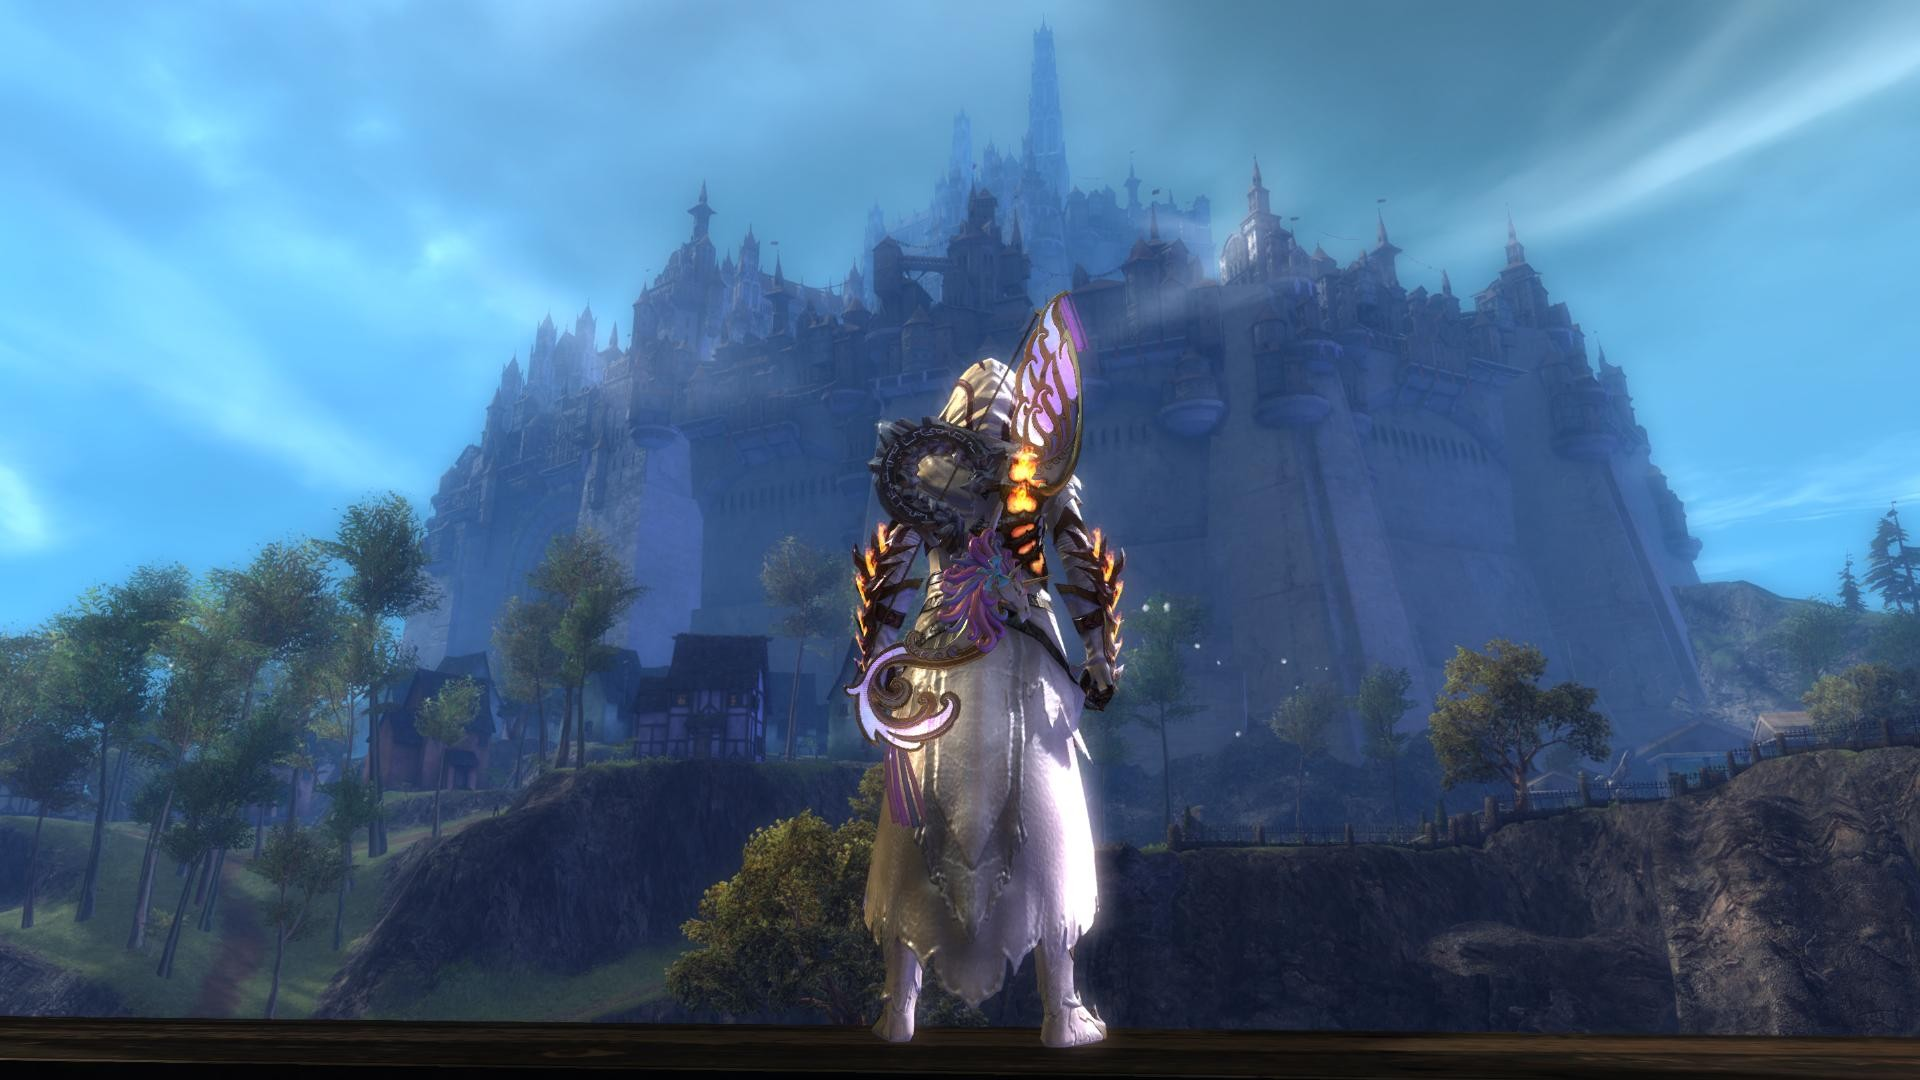 Guild Wars 2 - My Thief with The Dreamer